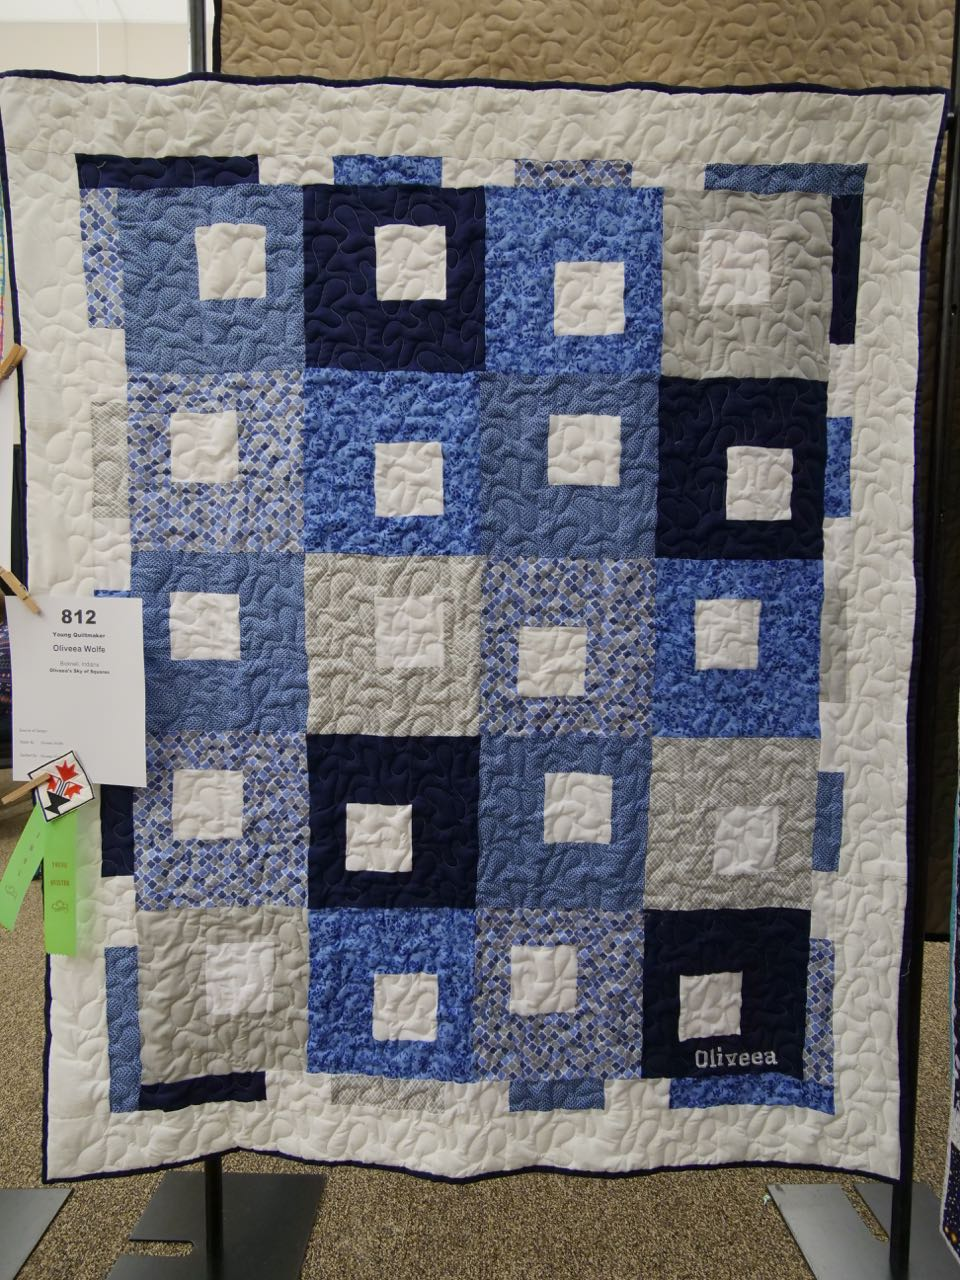 Oliveea's Sky of Squares - Young Quiltmaker